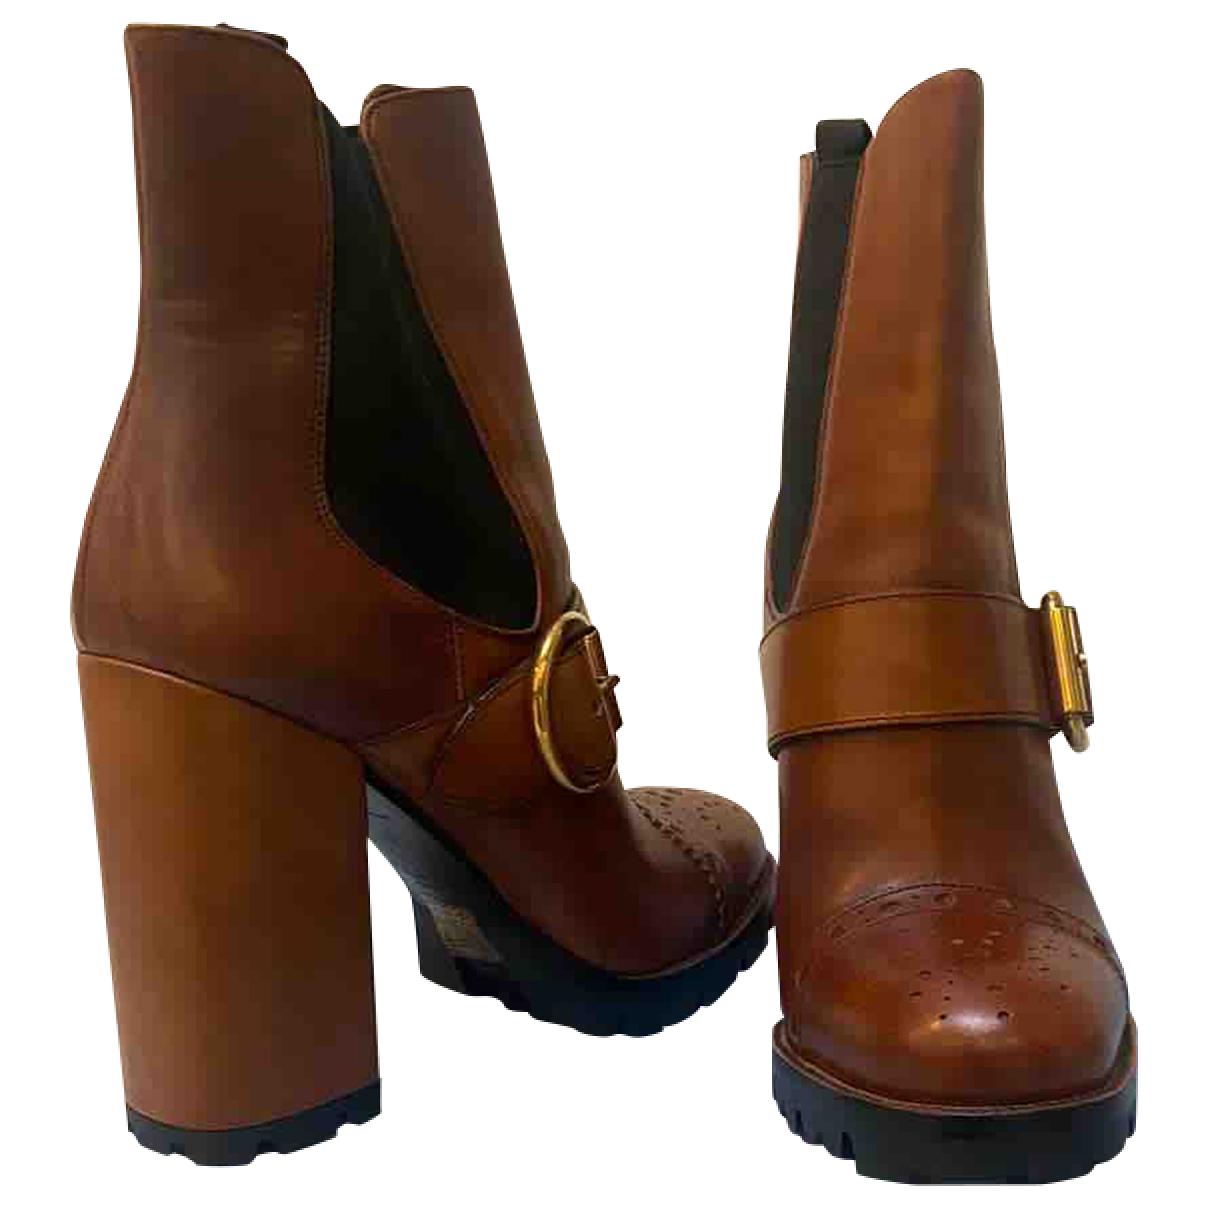 Prada N Camel Leather Ankle boots for Women